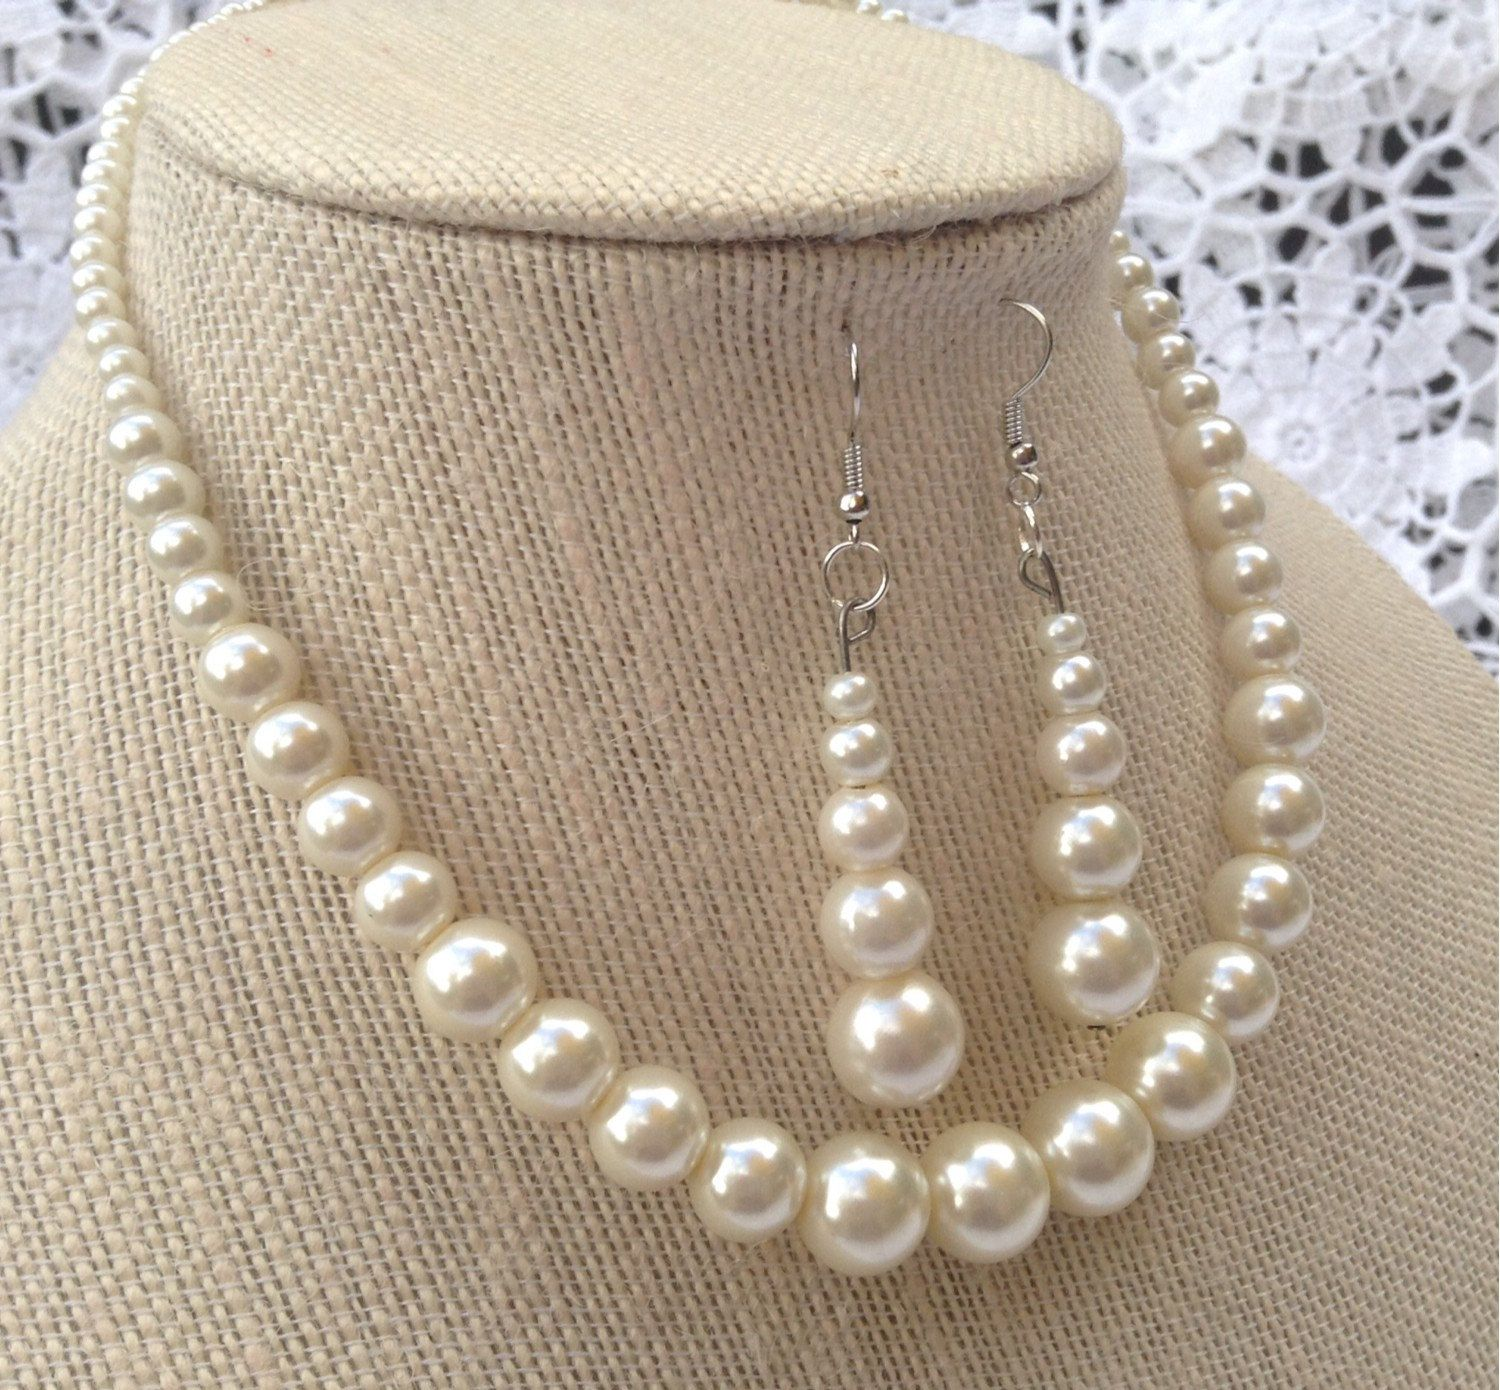 Cherish every moment! Bridal jewelry: ivory toned bead necklace by Jay of Dragonfly, affordably priced at under $20.